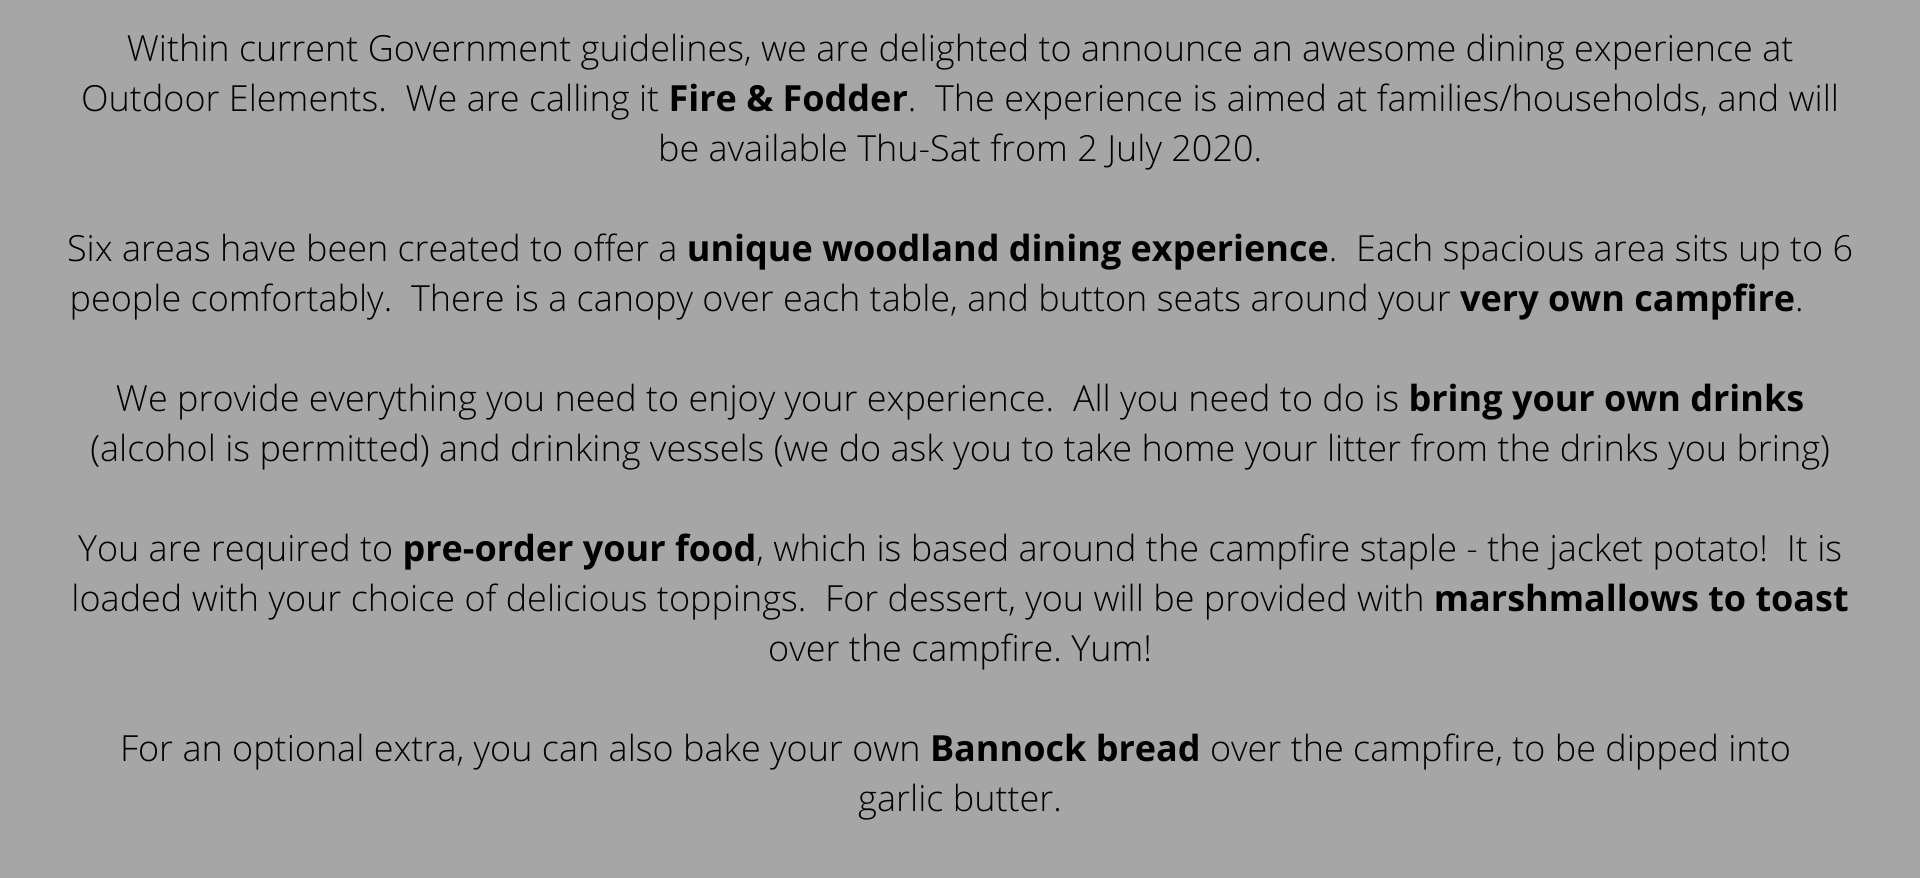 Fire & Fodder Woodland Dining Experience in Simonstone